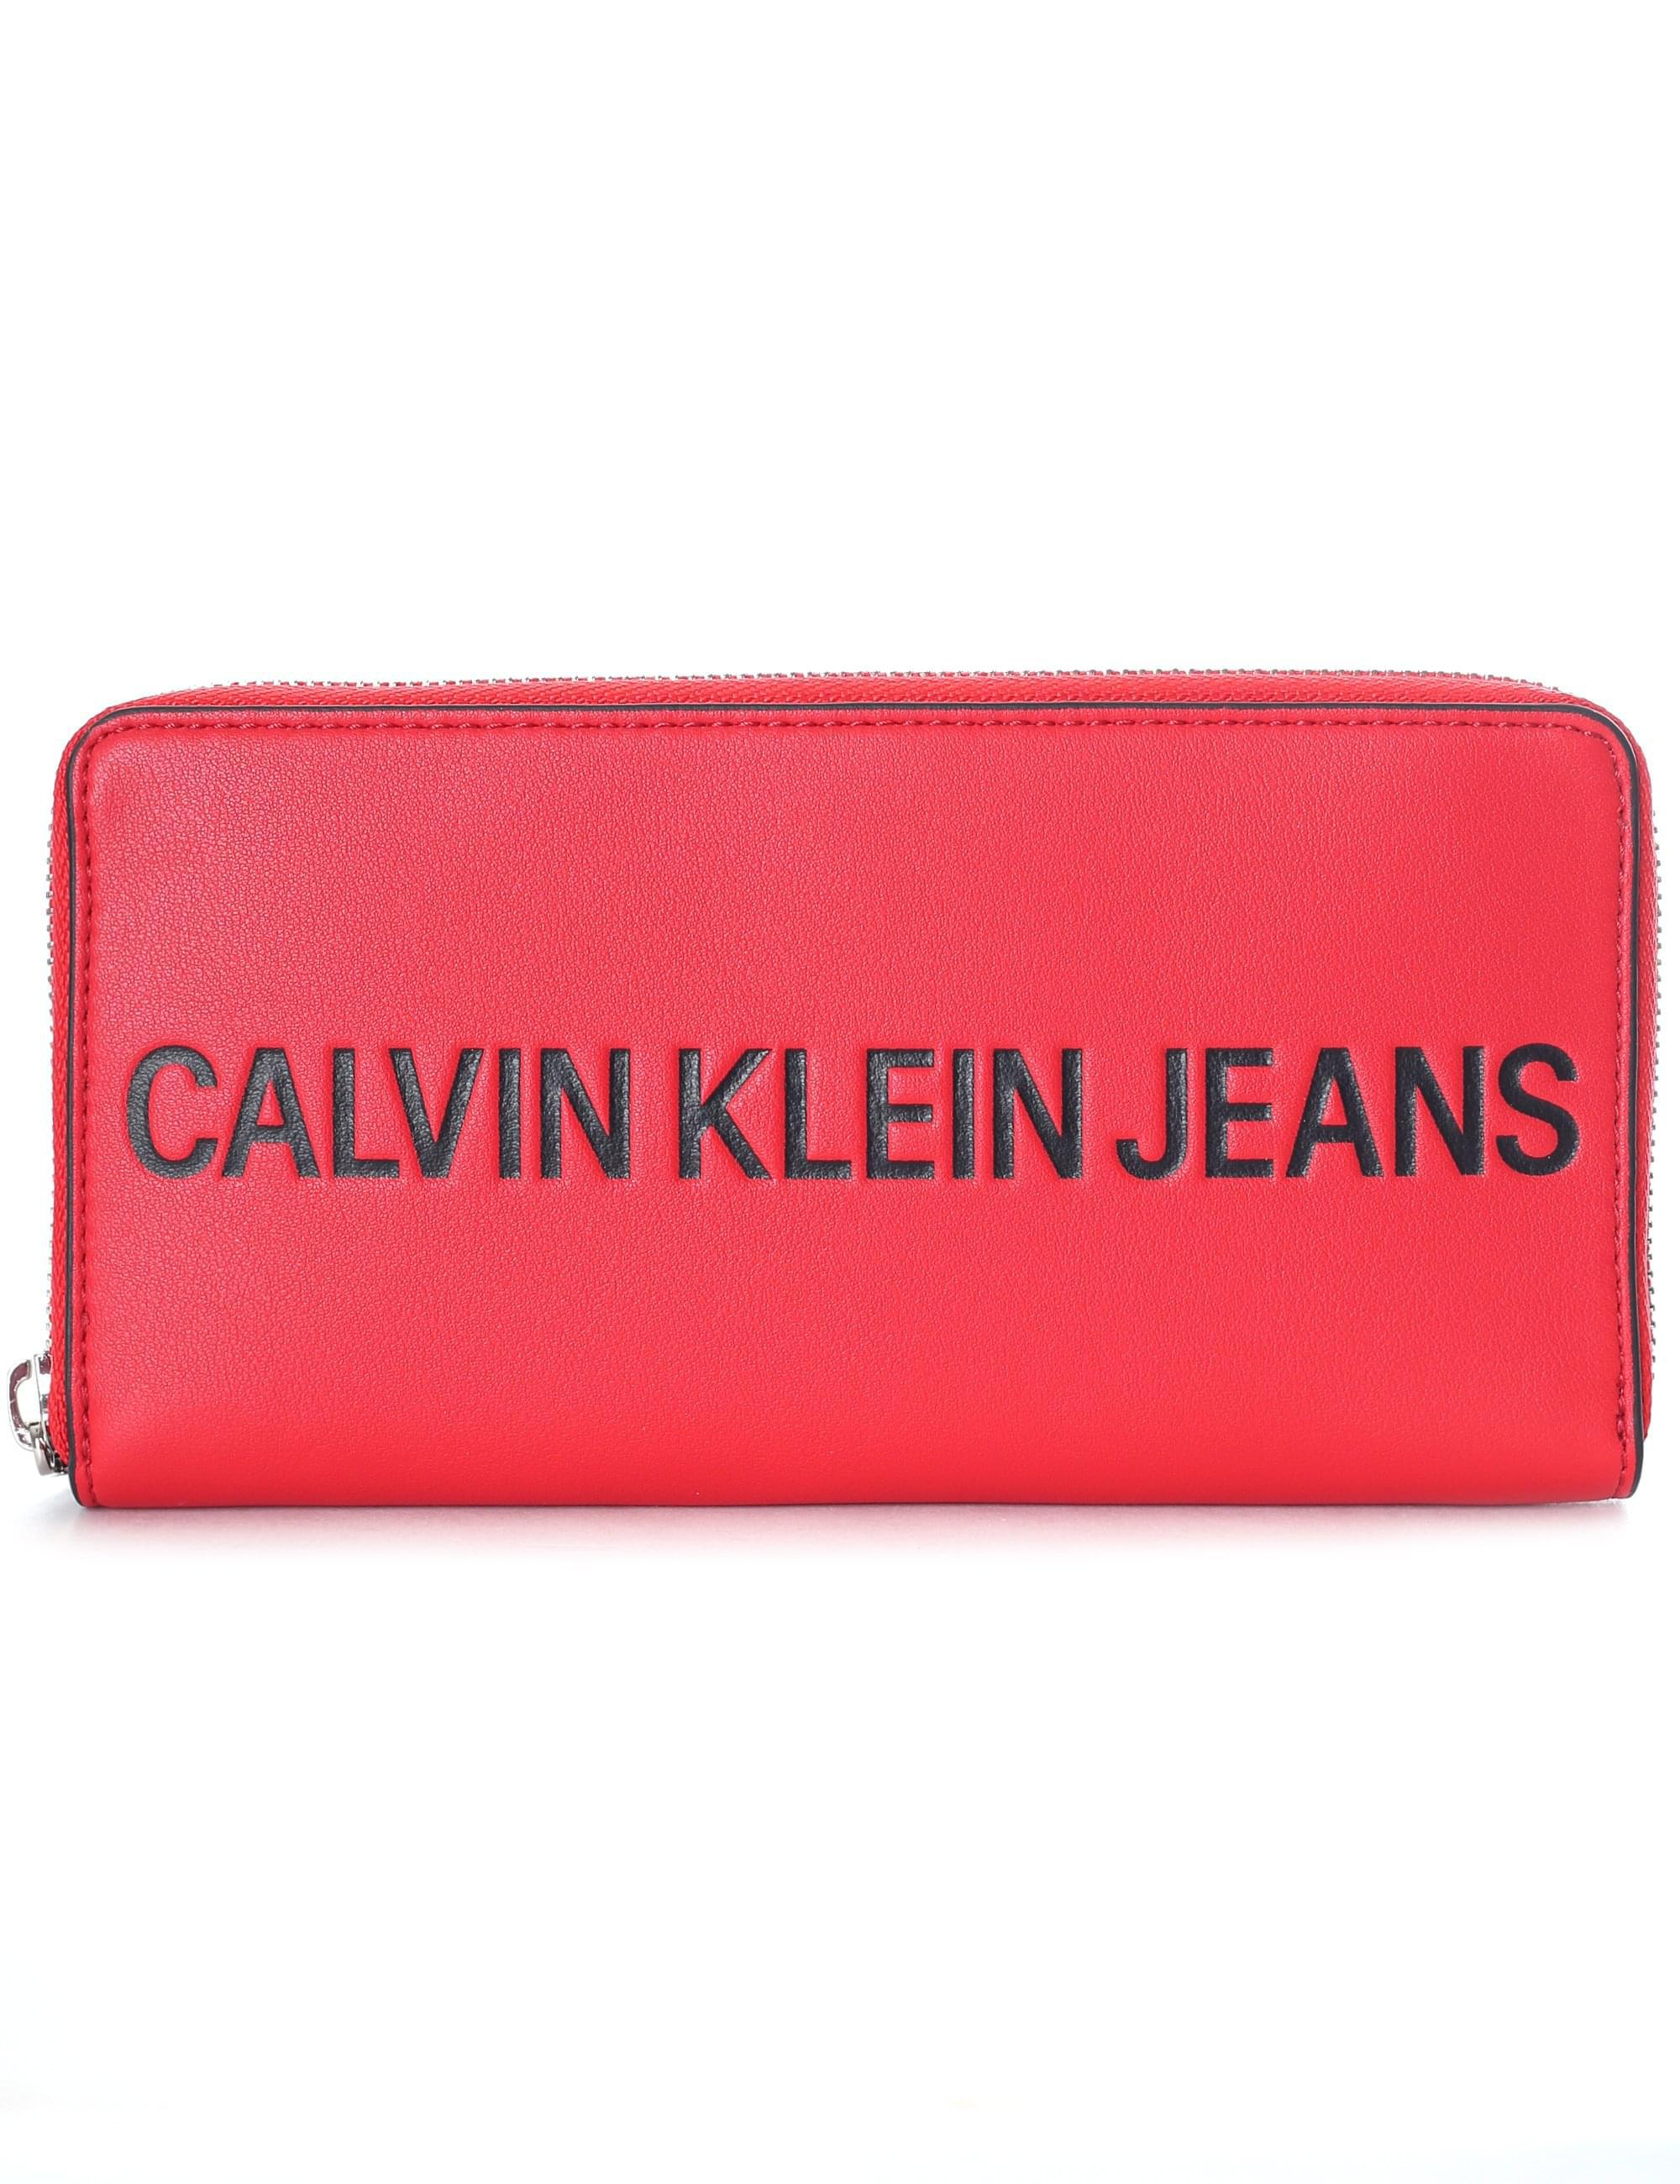 df33c6083ff Calvin Klein Logo Zip Around Purse in Red - Lyst